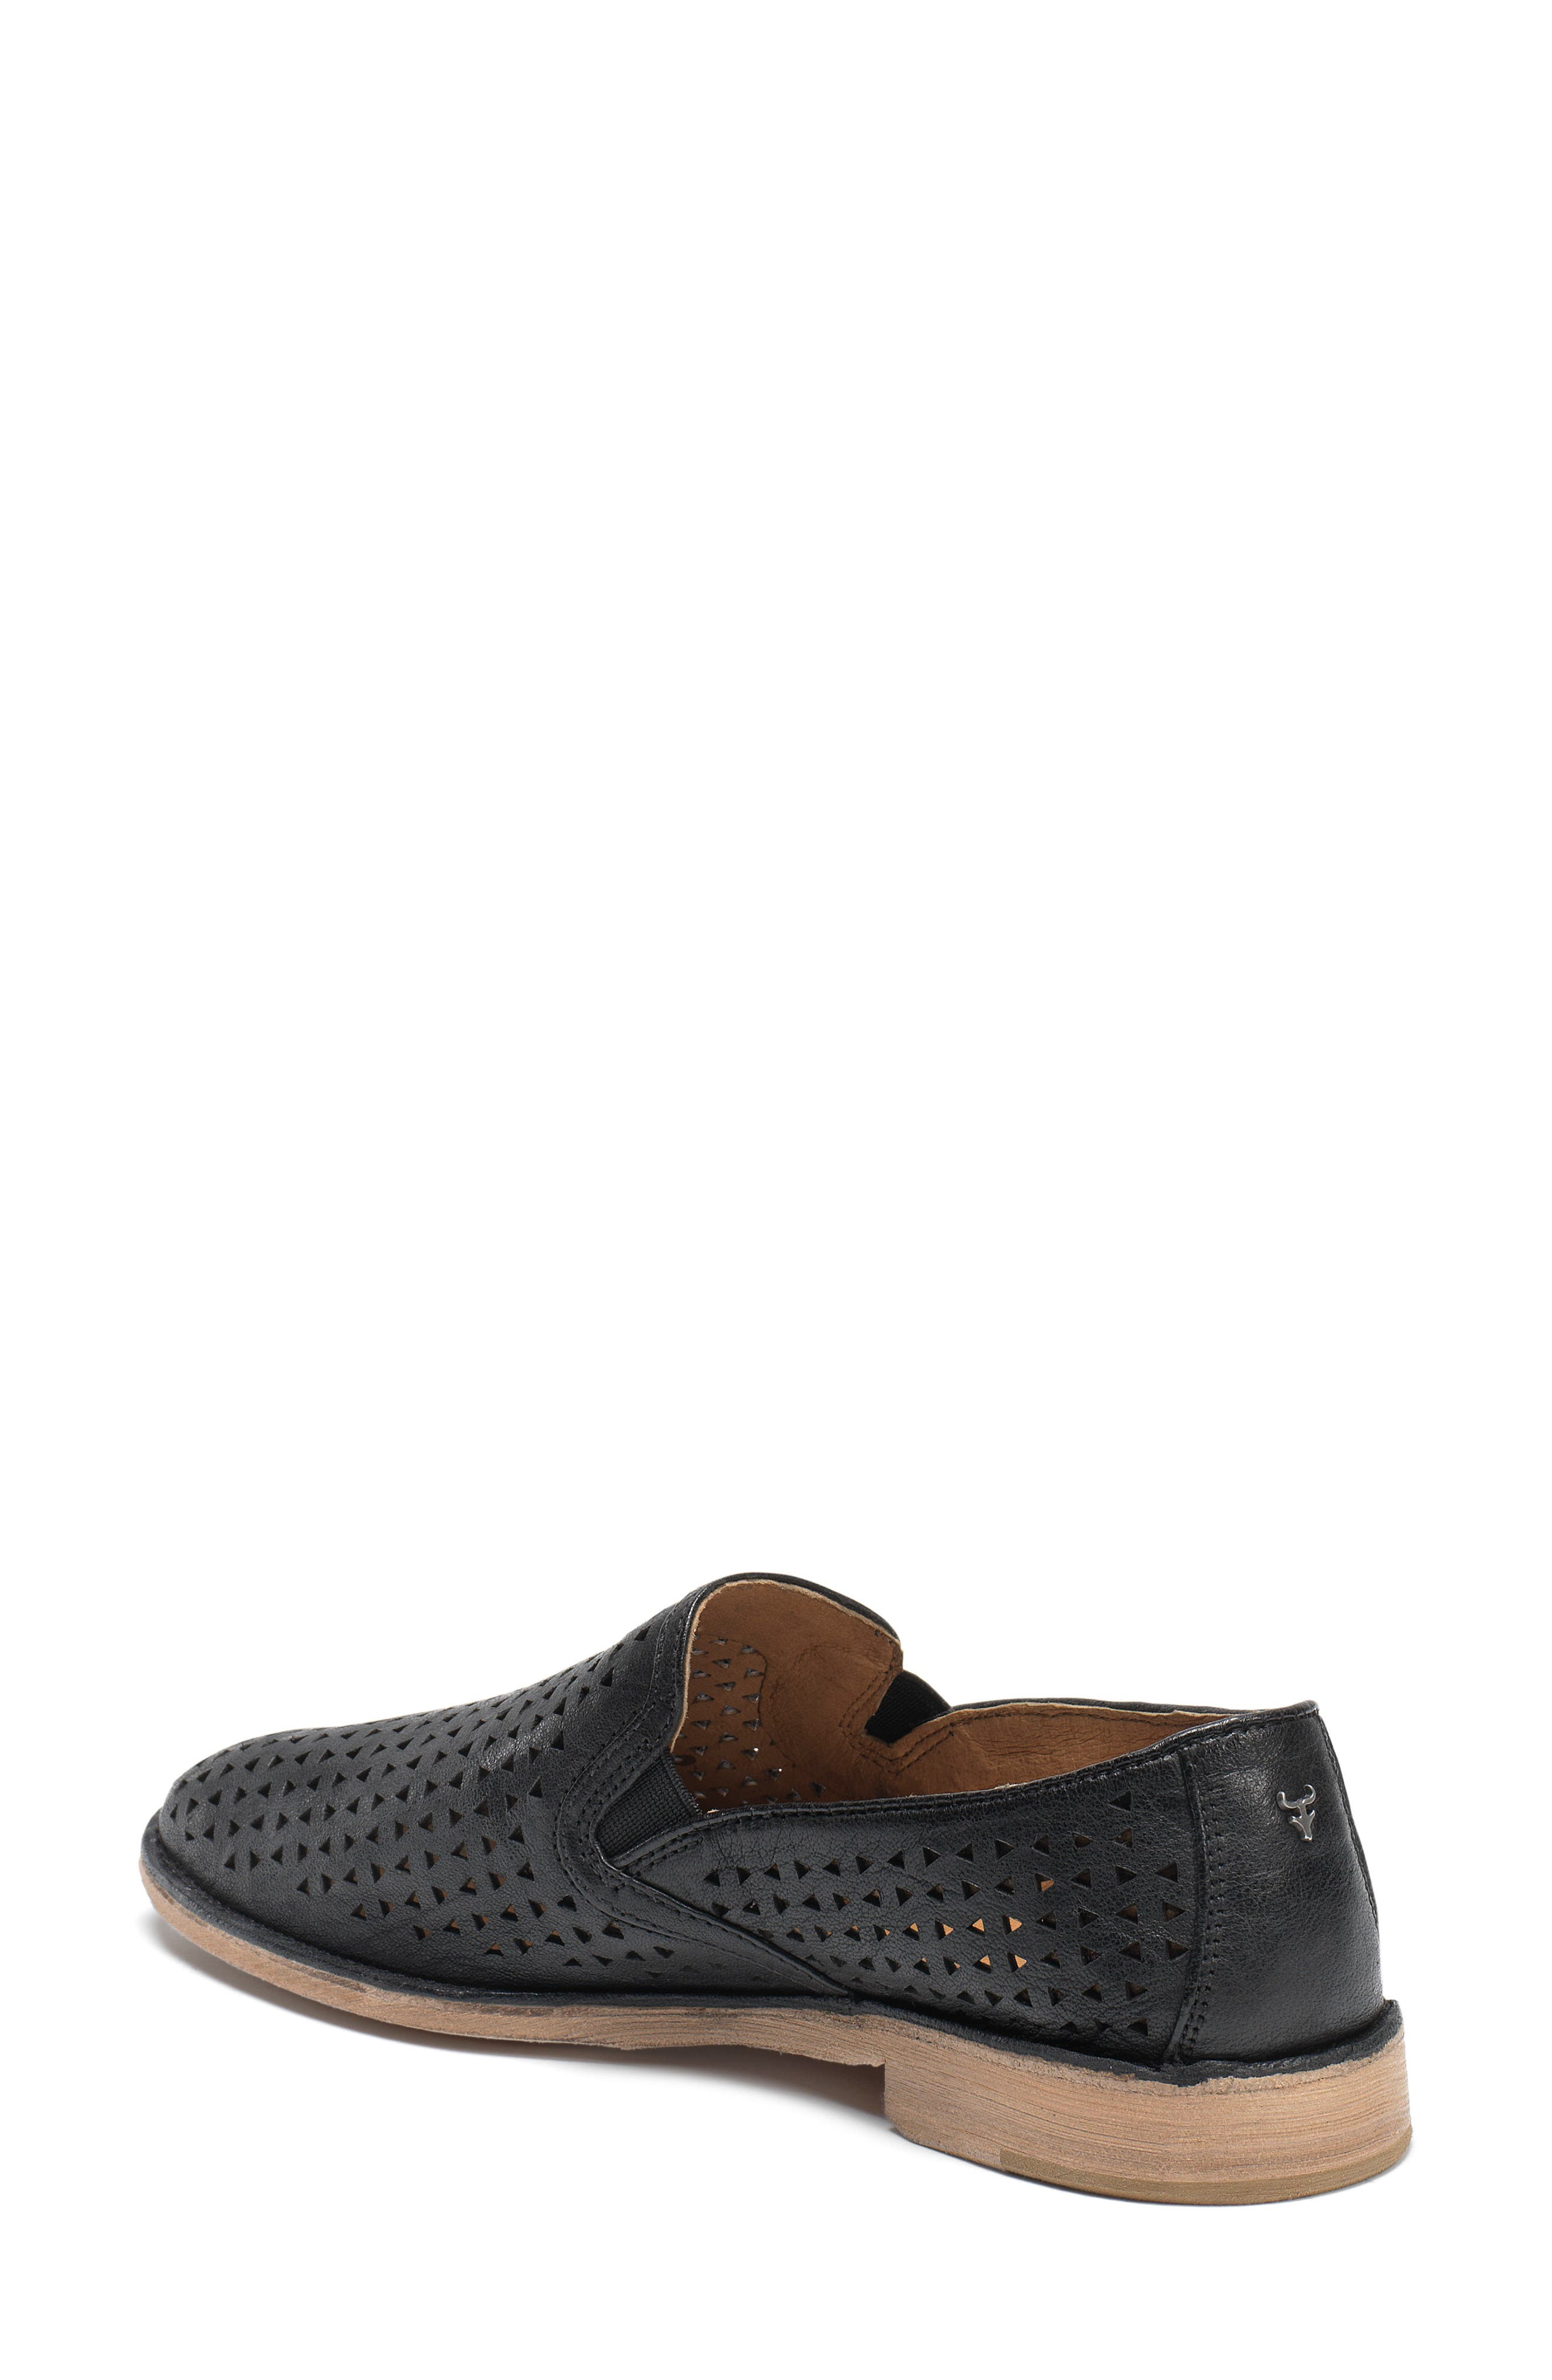 Ali Perforated Loafer,                             Alternate thumbnail 2, color,                             BLACK LEATHER